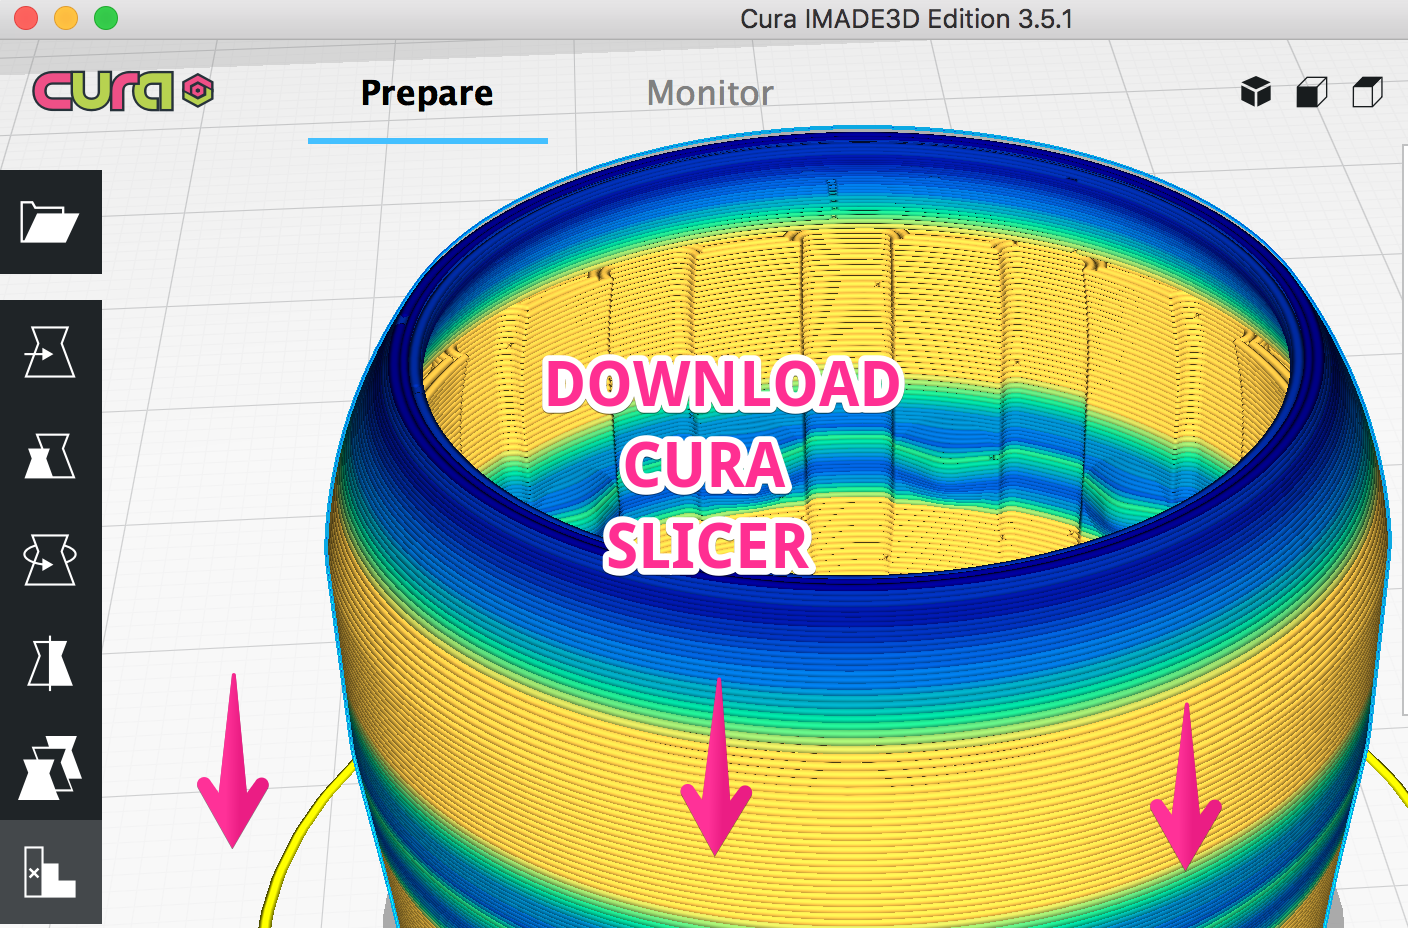 Download the Latest Cura Slicer for Your JellyBOX | IMADE3D